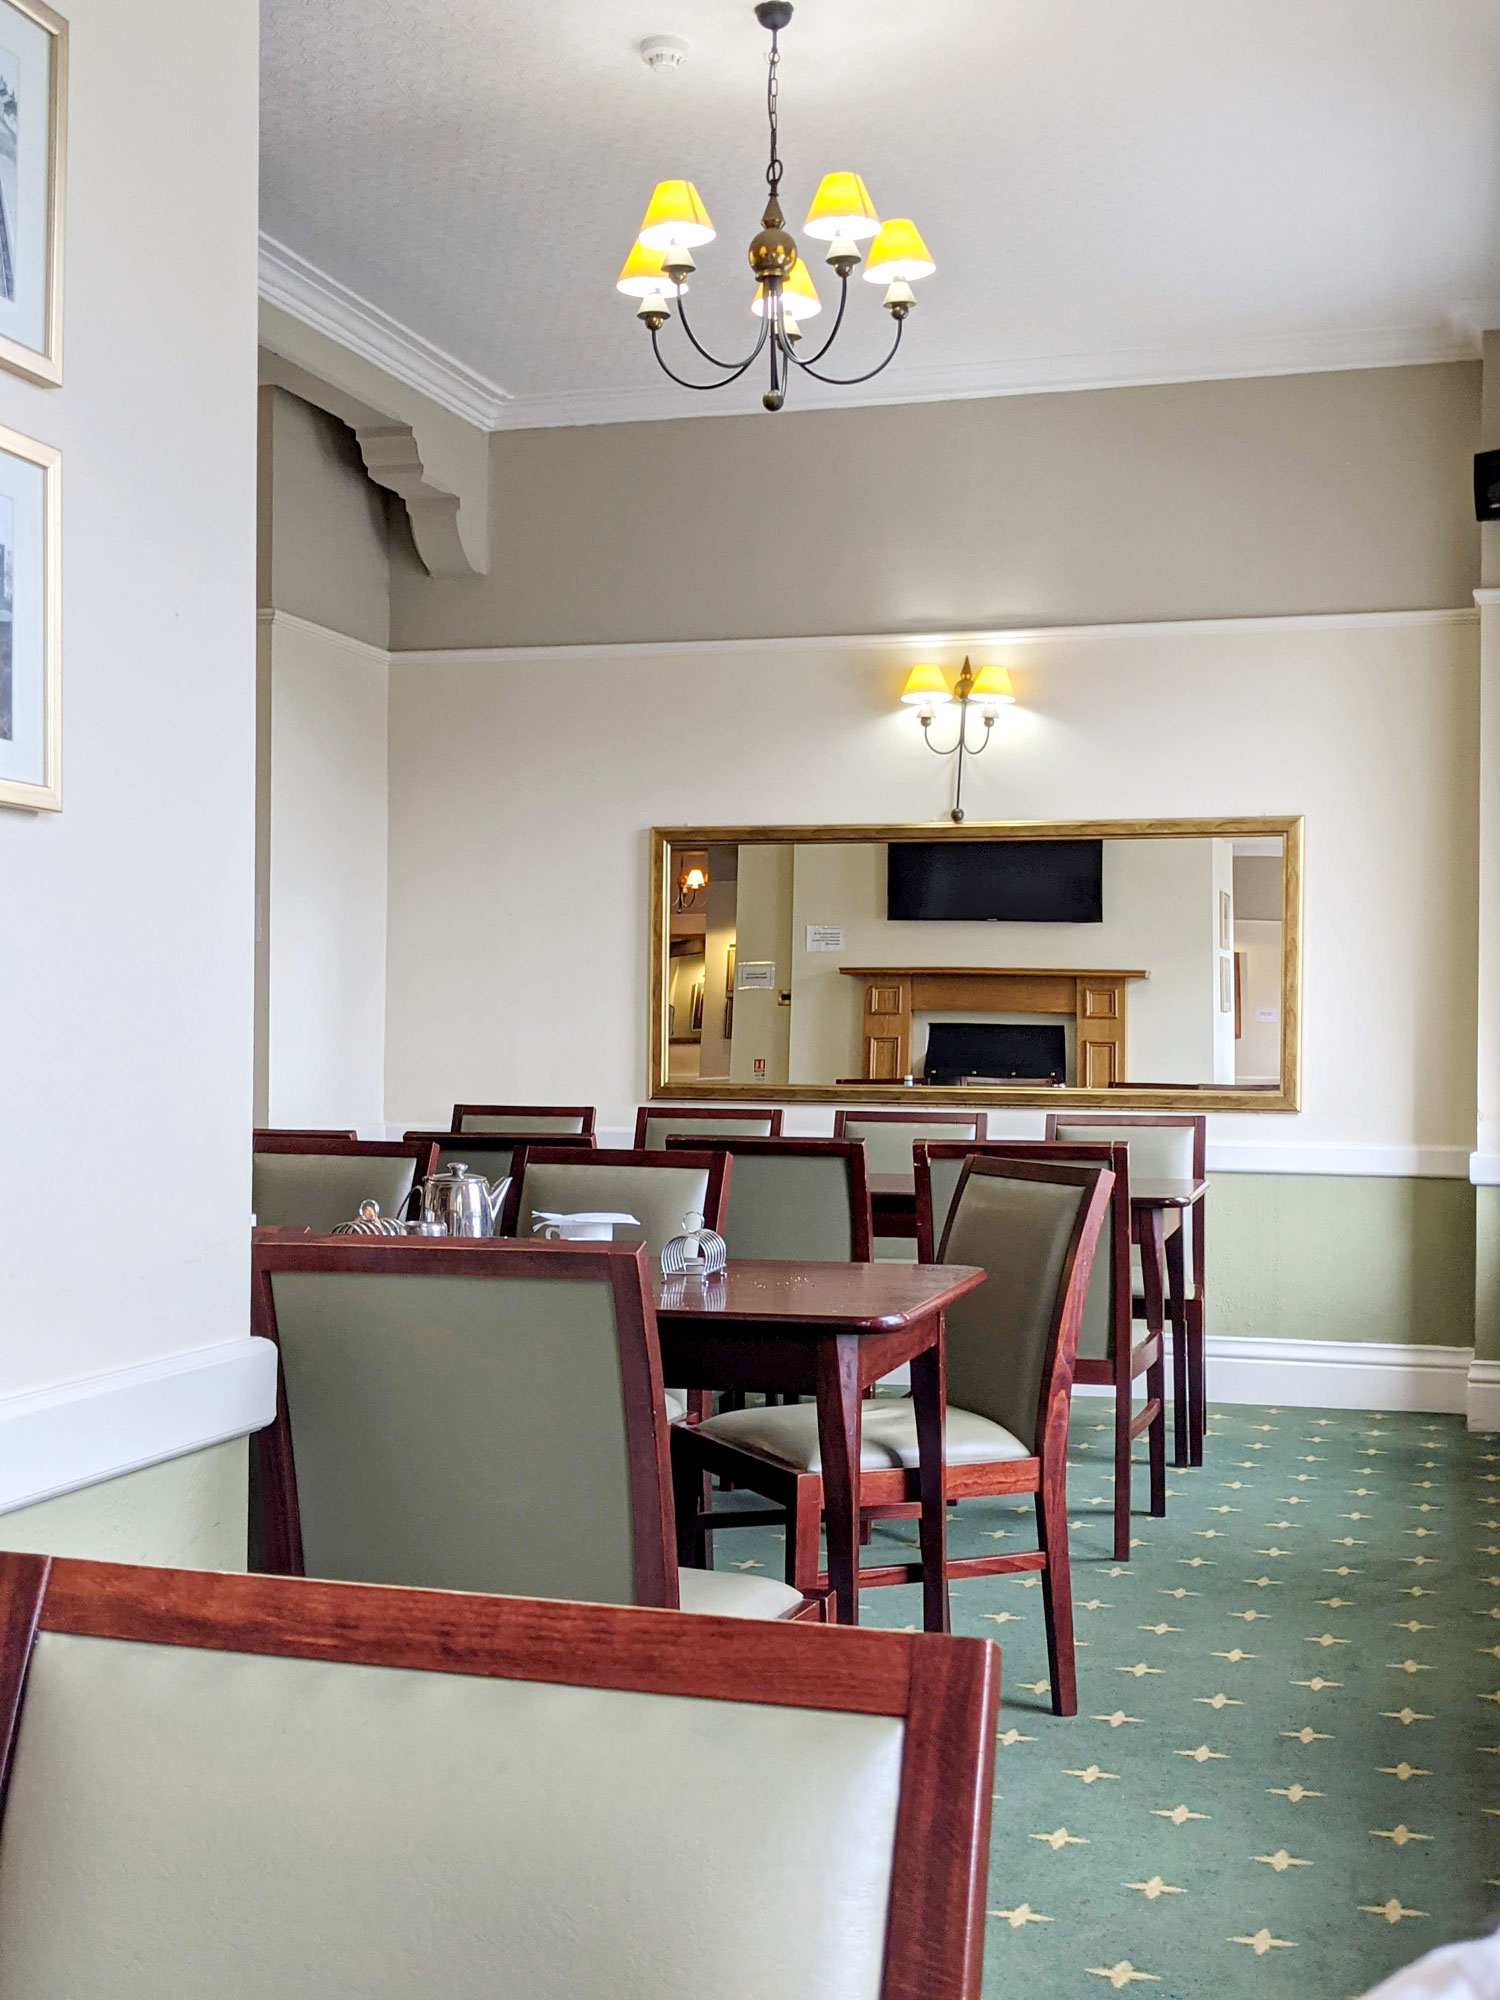 The Golf Hotel, Silloth